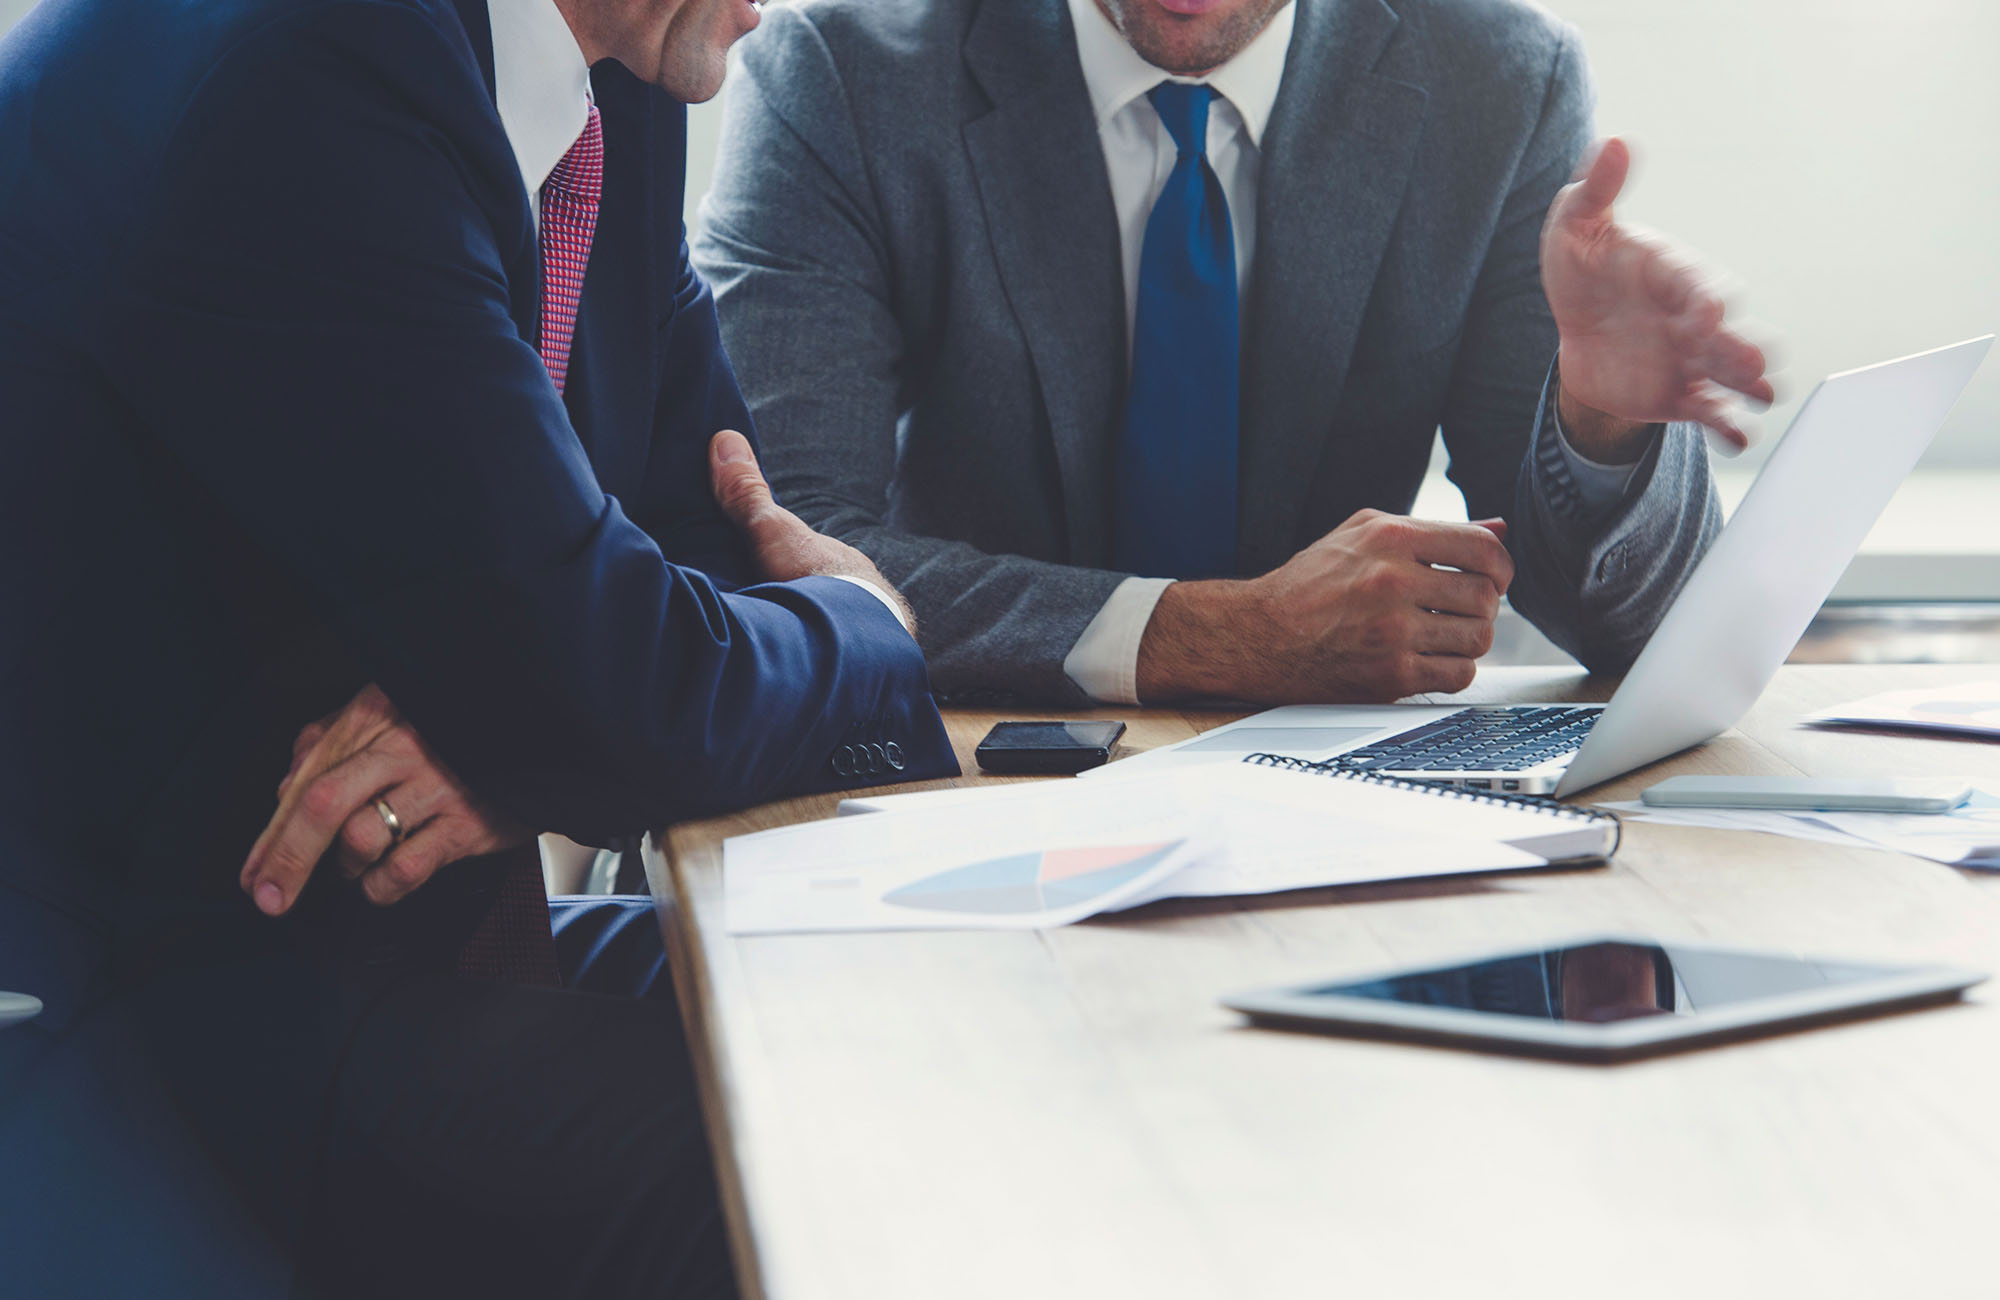 7 Vital Ways to Master the Art of Delegating